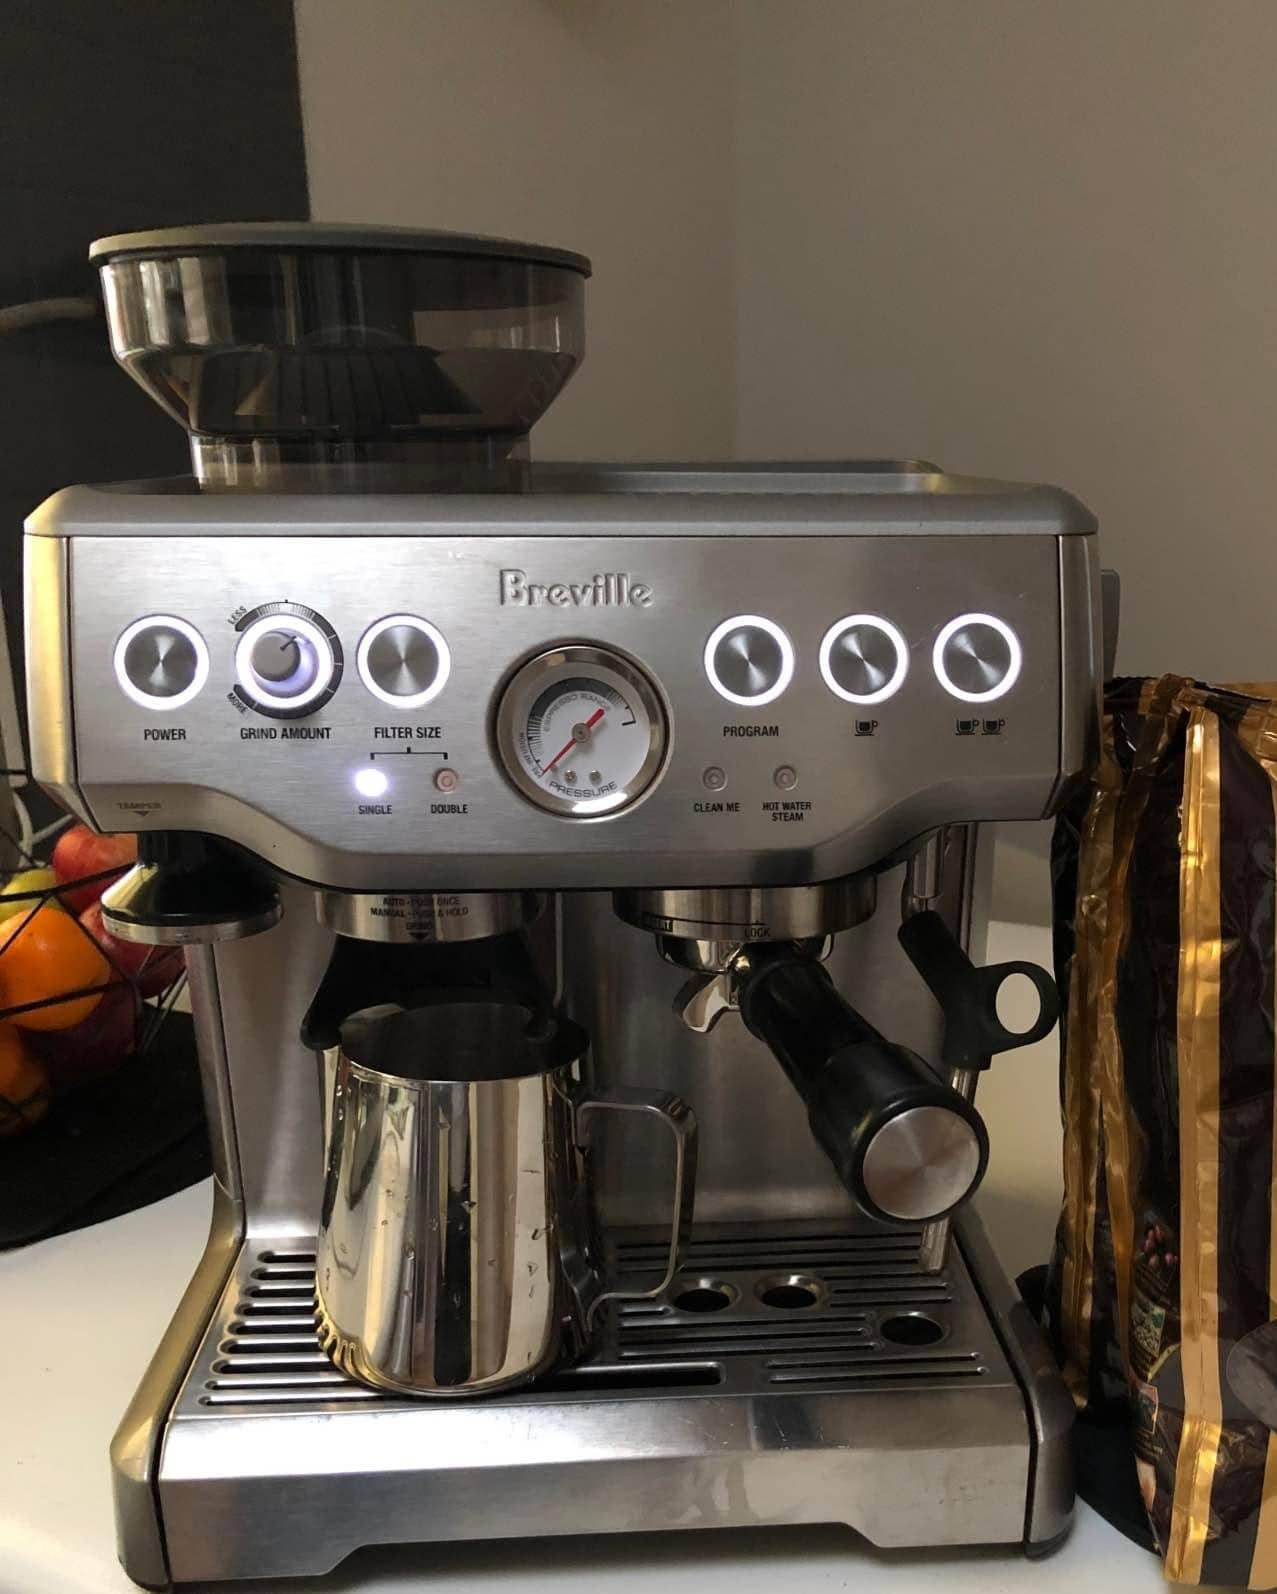 Barista Express is operating